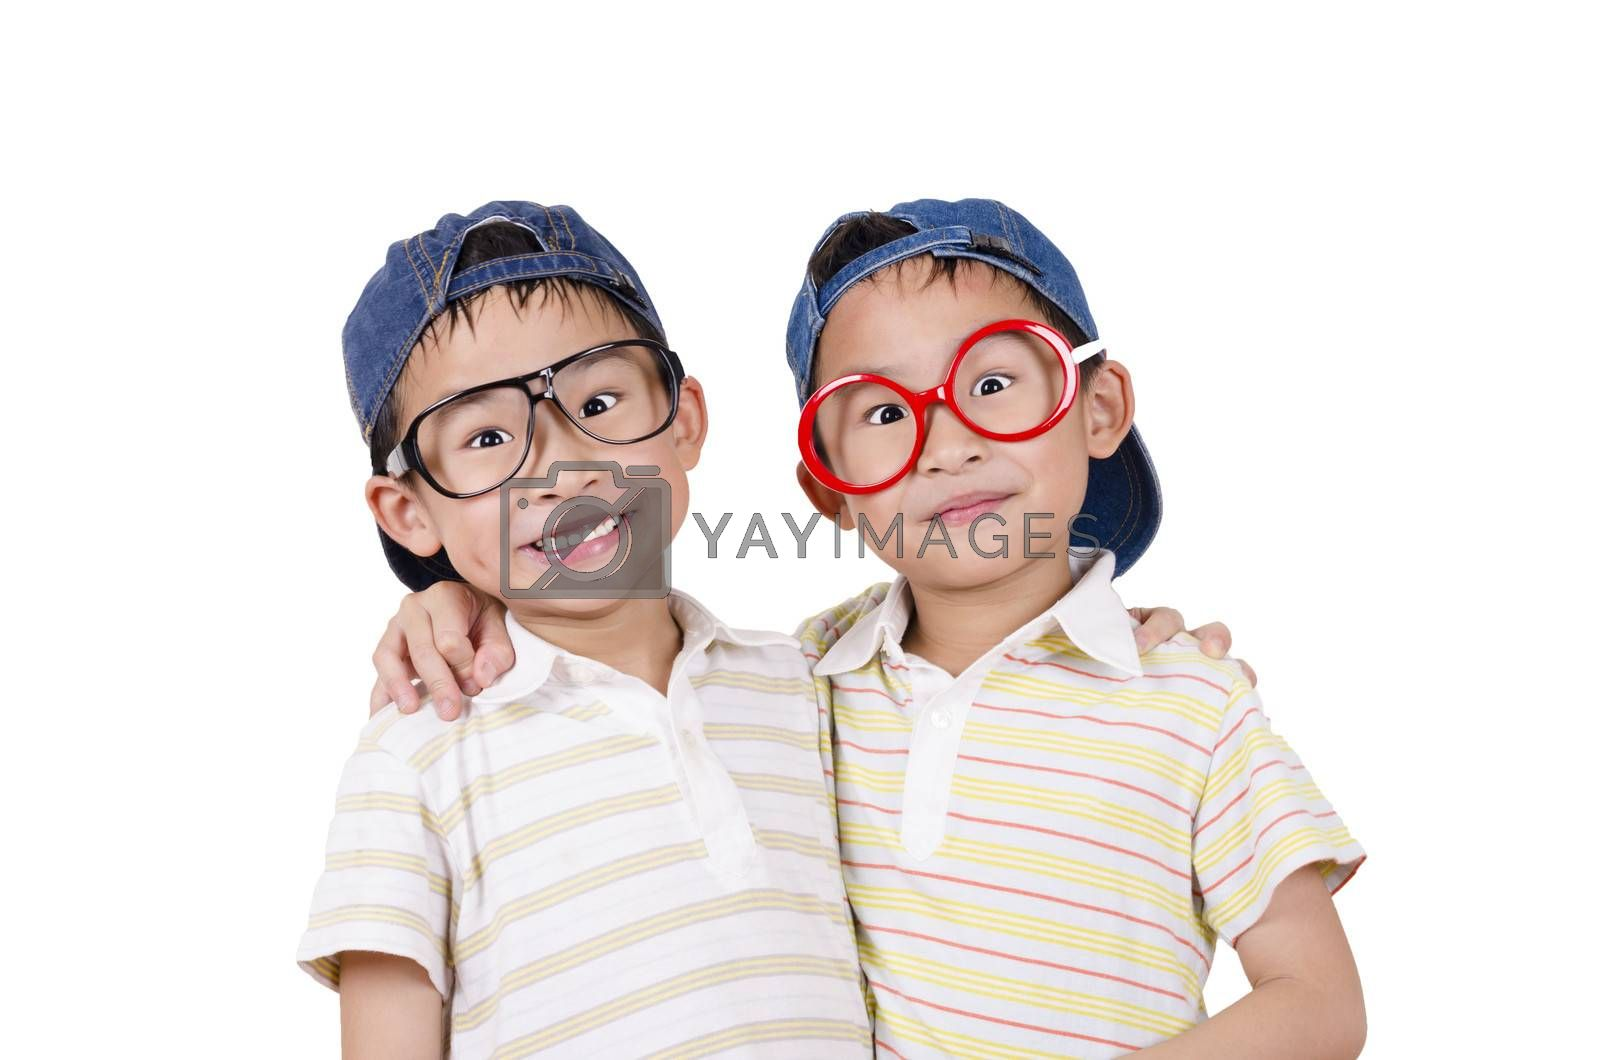 Royalty free image of Cute twin smiling by FrankyLiu